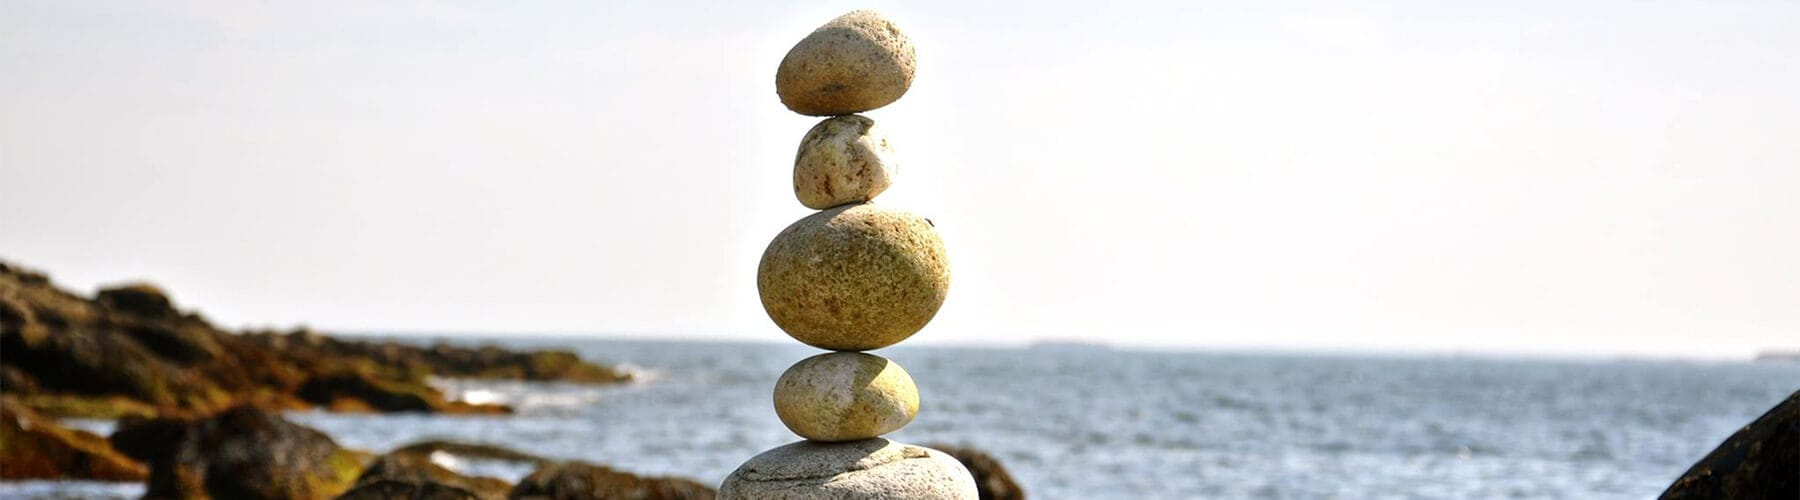 Stack of rocks on a rocky beach